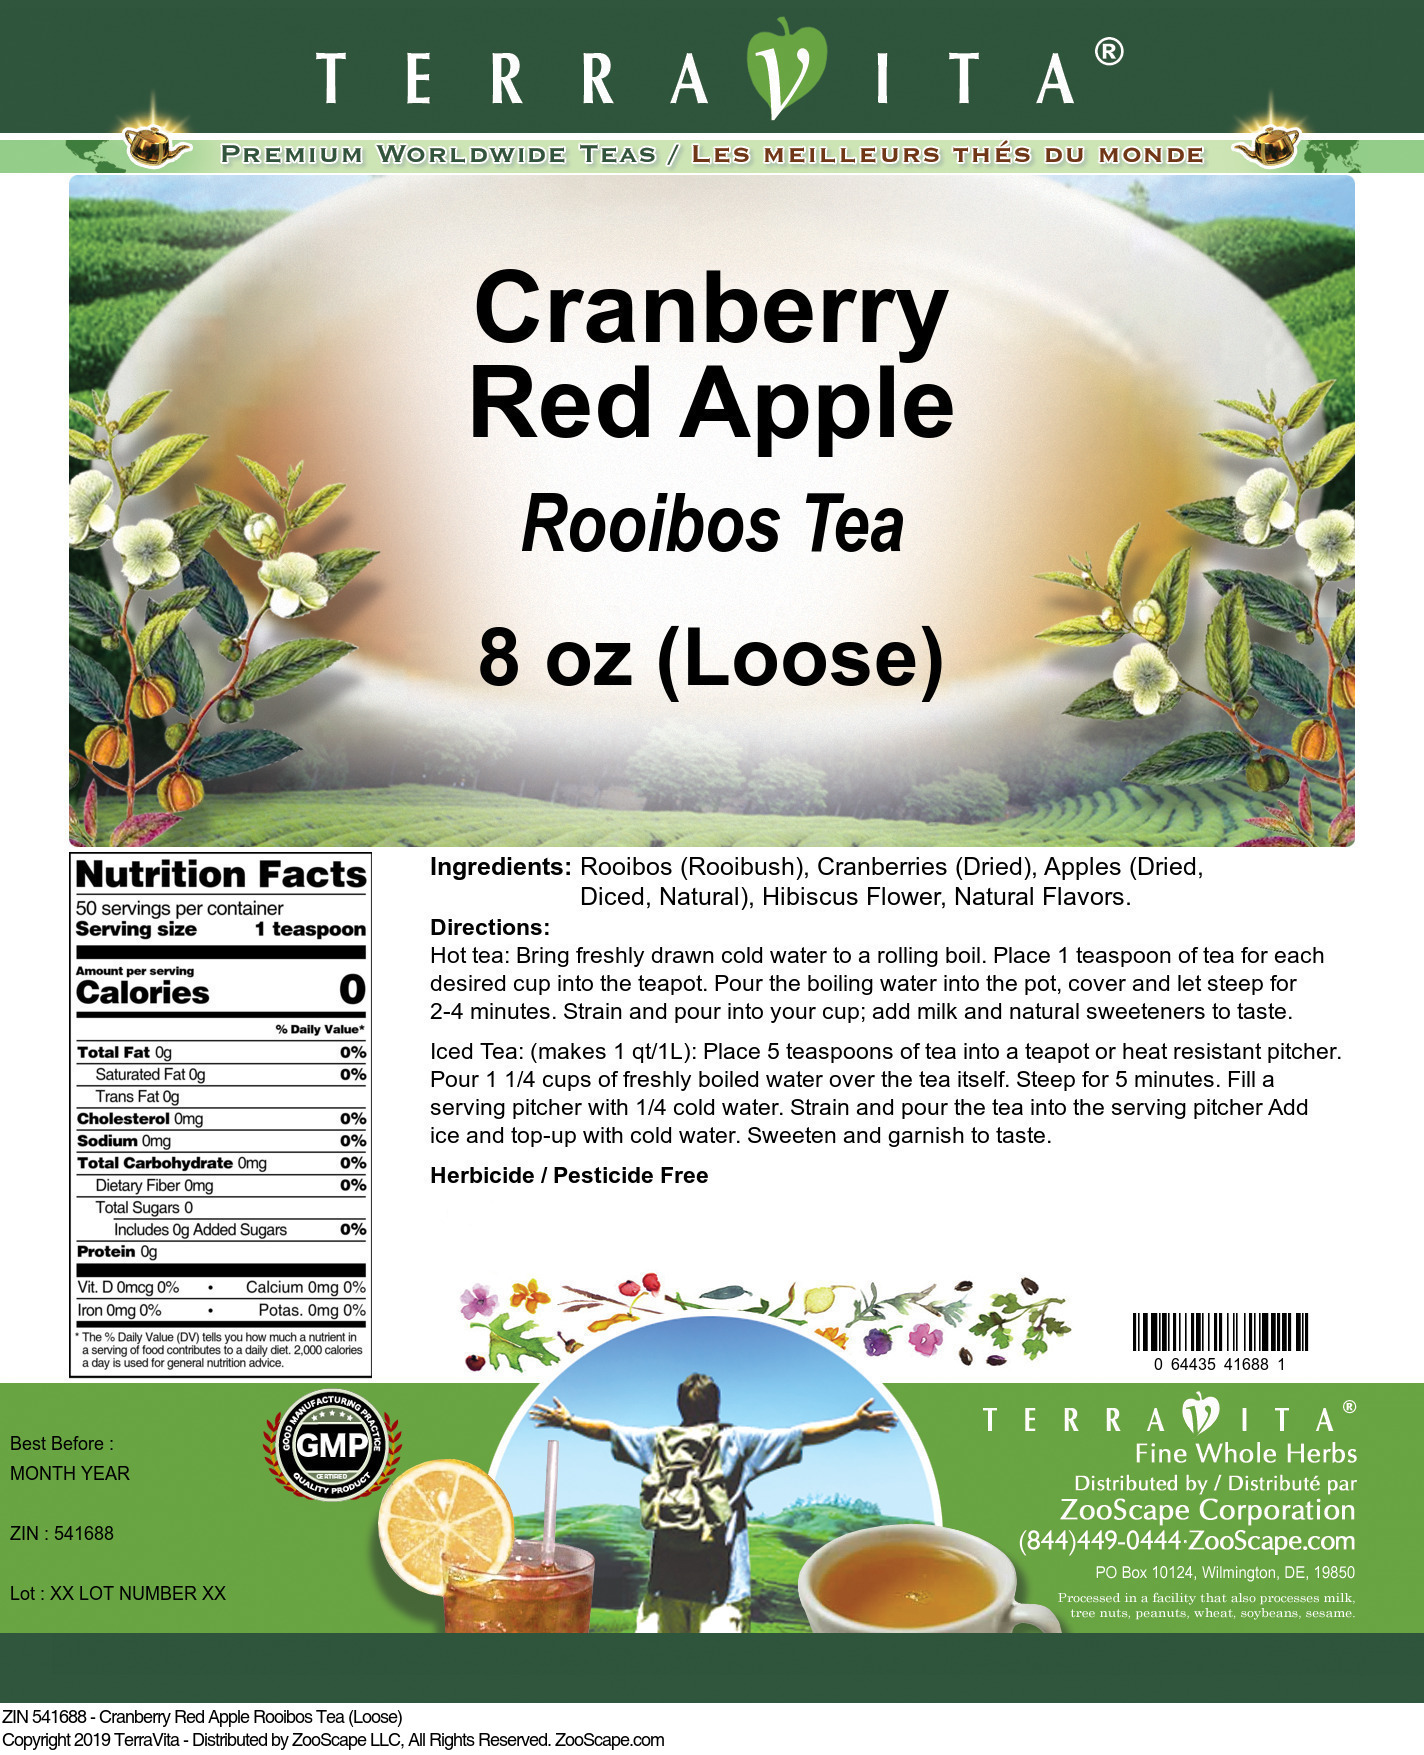 Cranberry Red Apple Rooibos Tea (Loose)